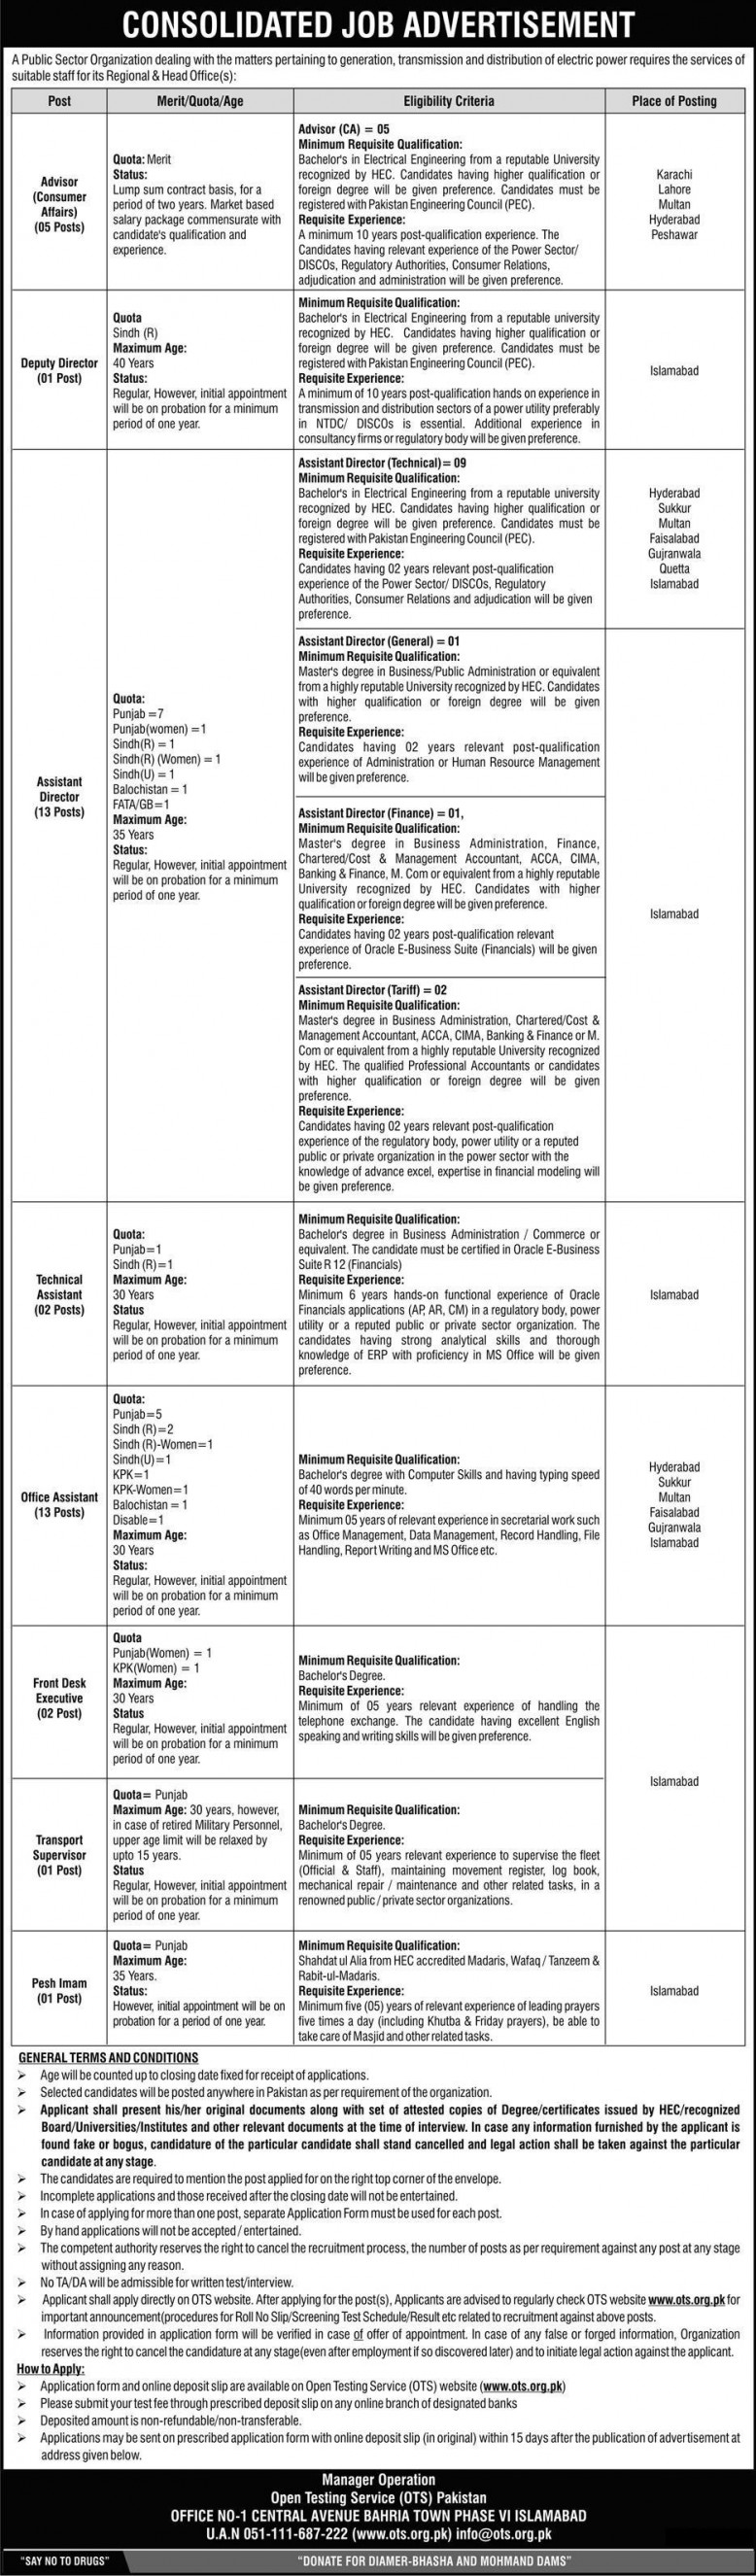 Public Sector Organization OTS Jobs 2019 in generation, transmission and distribution in electric power 2019